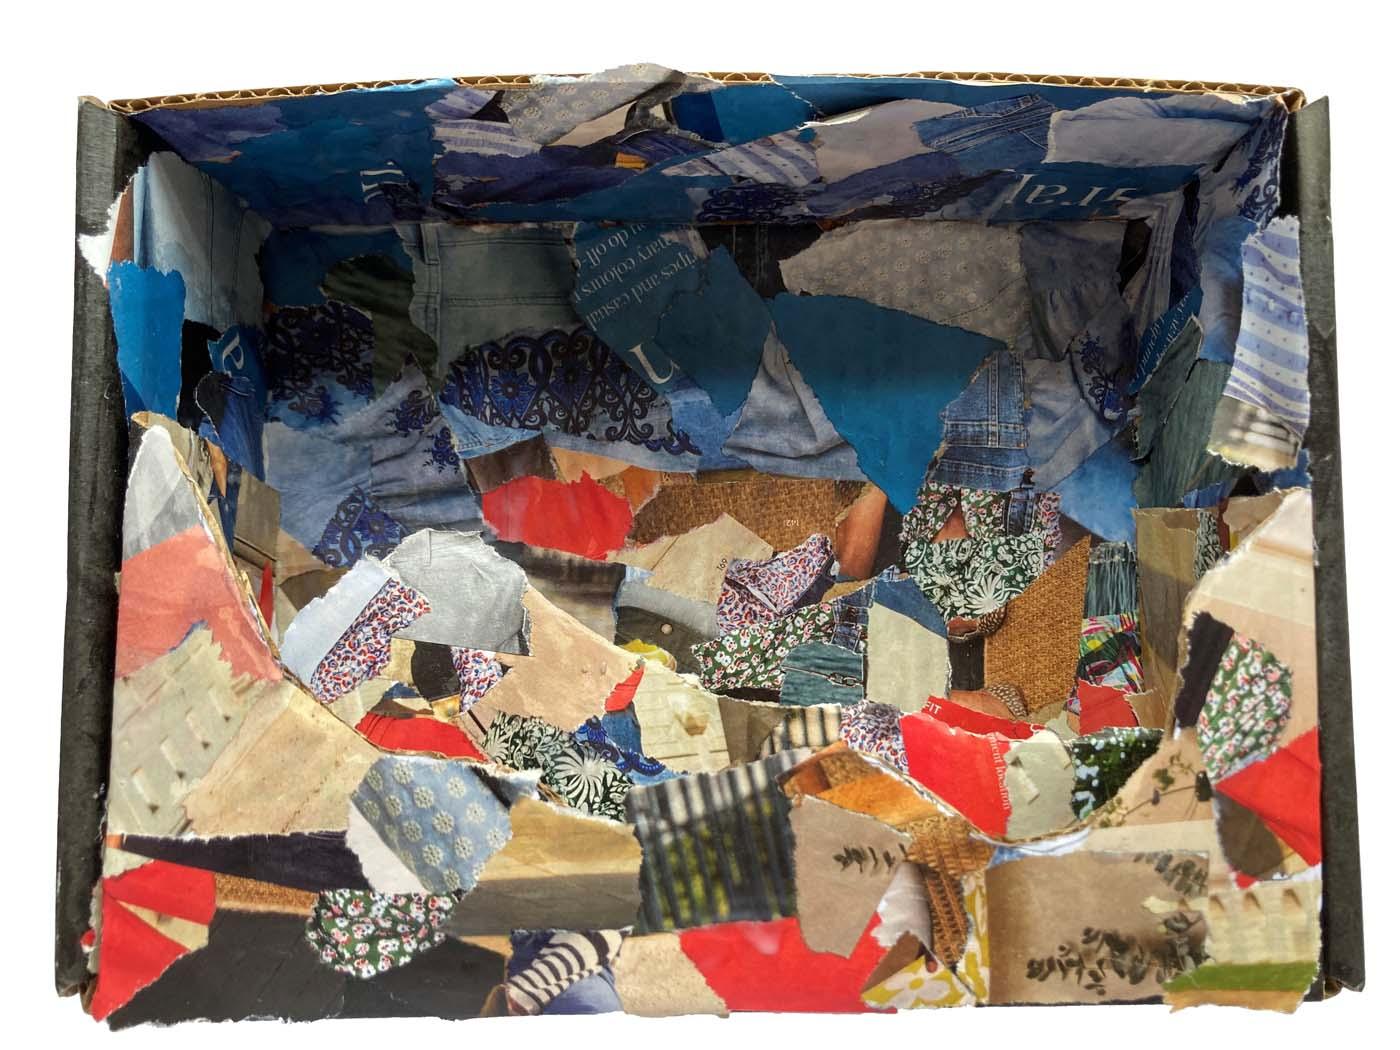 Backdrop for a rockpool made of card and collage